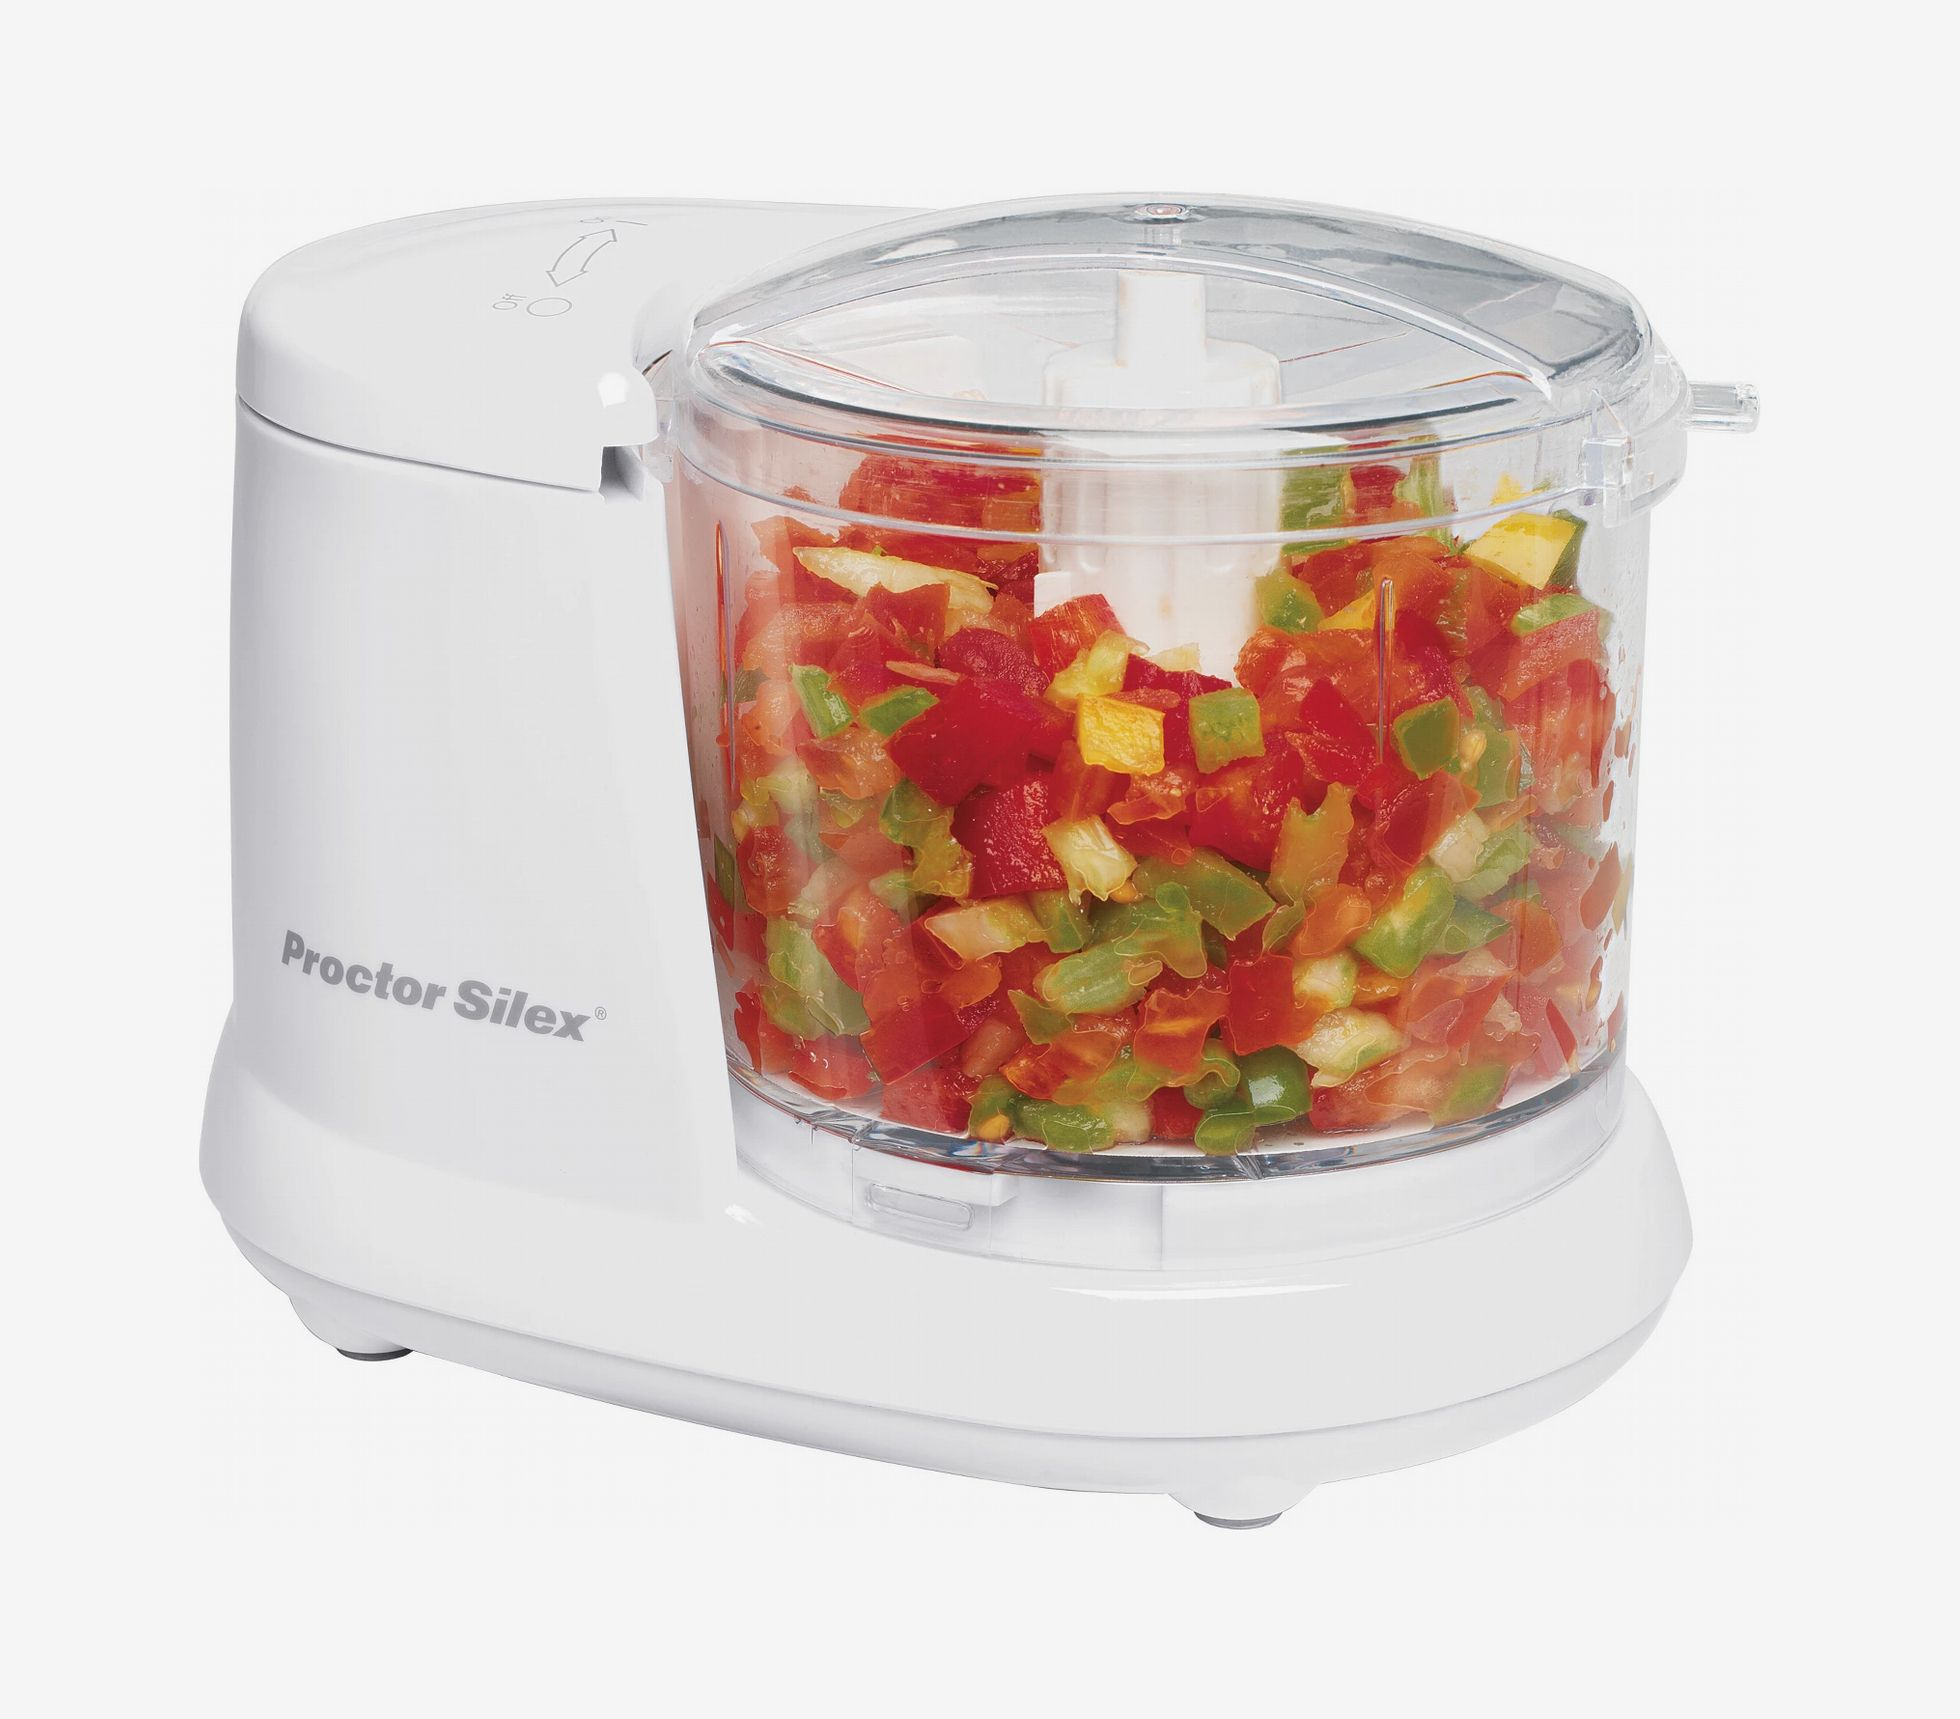 14 Best Tiny Kitchen Appliances For Small Spaces 2020 The Strategist